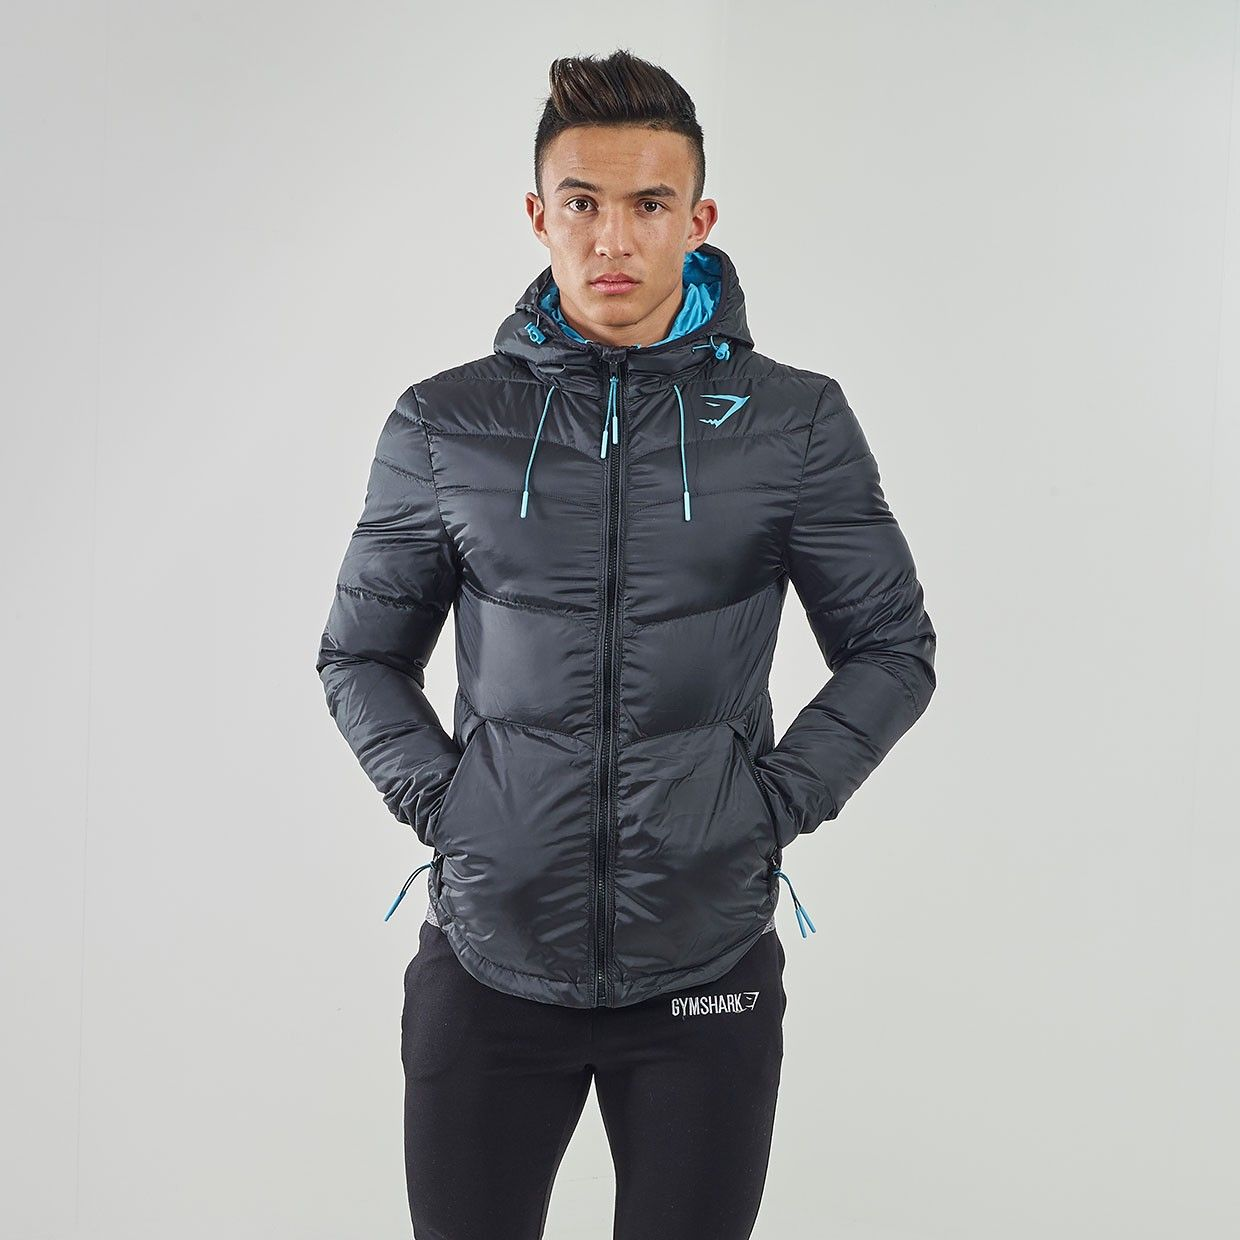 ab4e154e Gymshark Fitted Sector Puffer Jacket - Black   Stuff to buy in 2019 ...